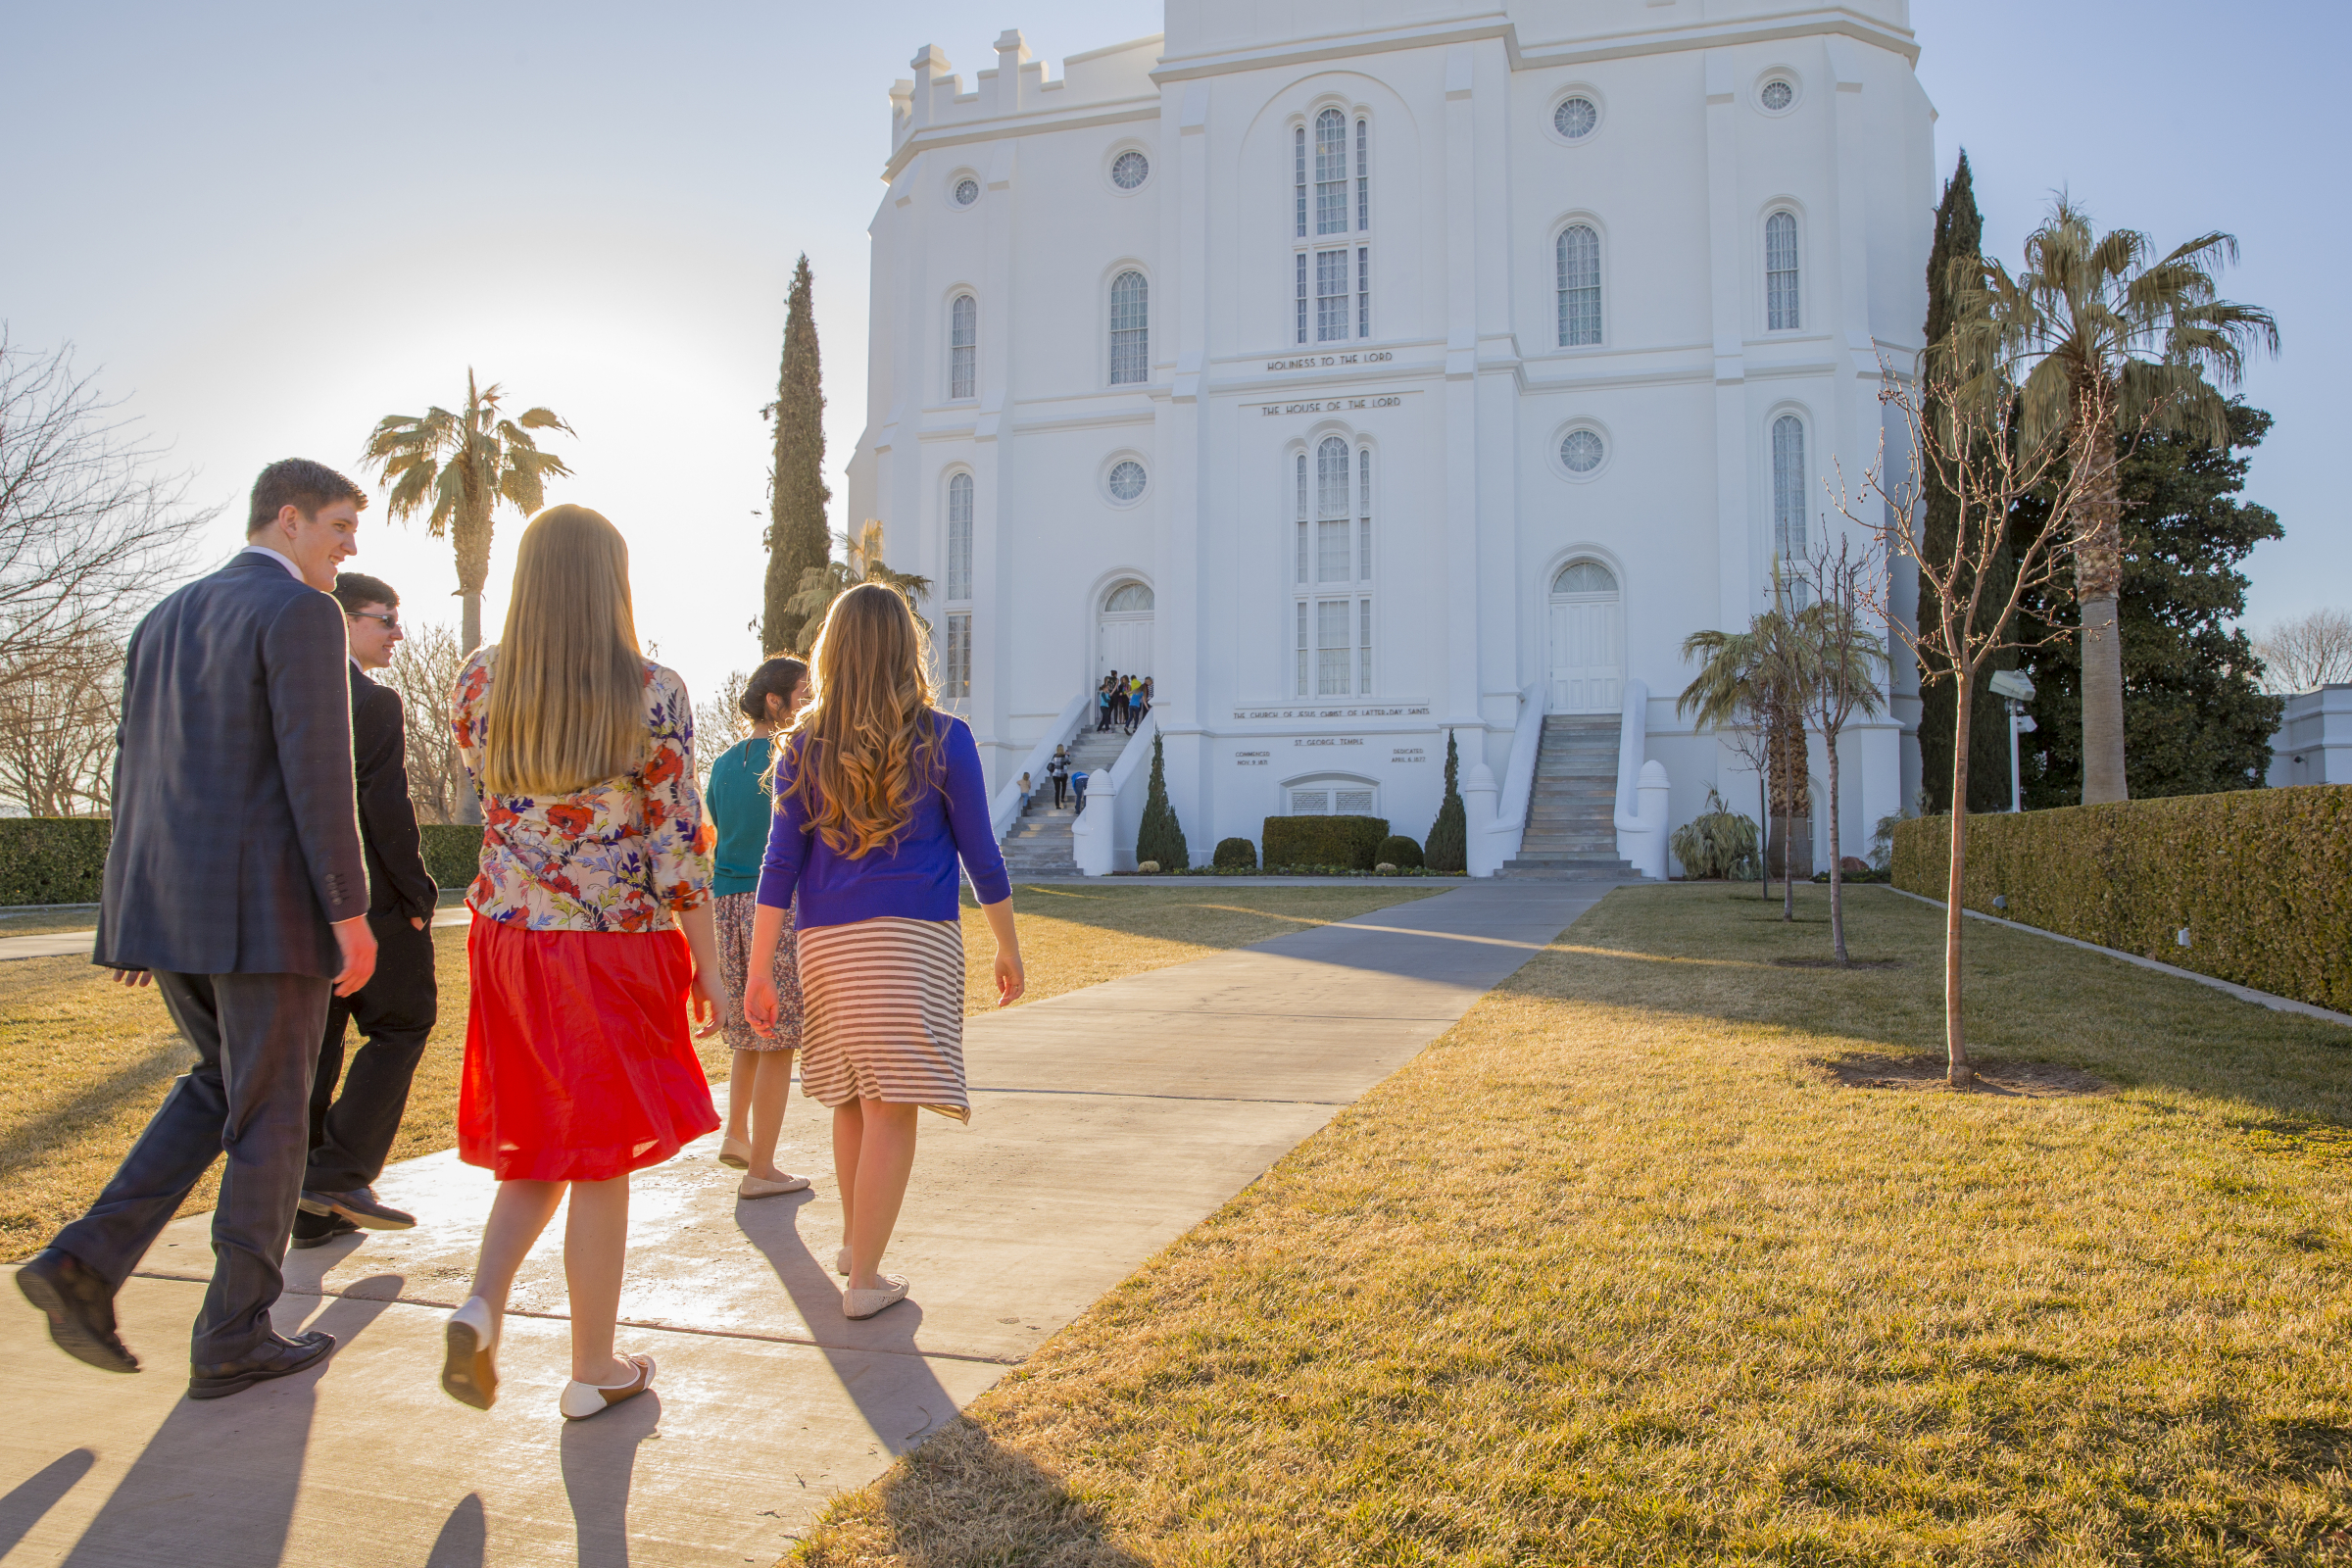 Lds Quotes For Youth: Youth At St. George Utah Temple